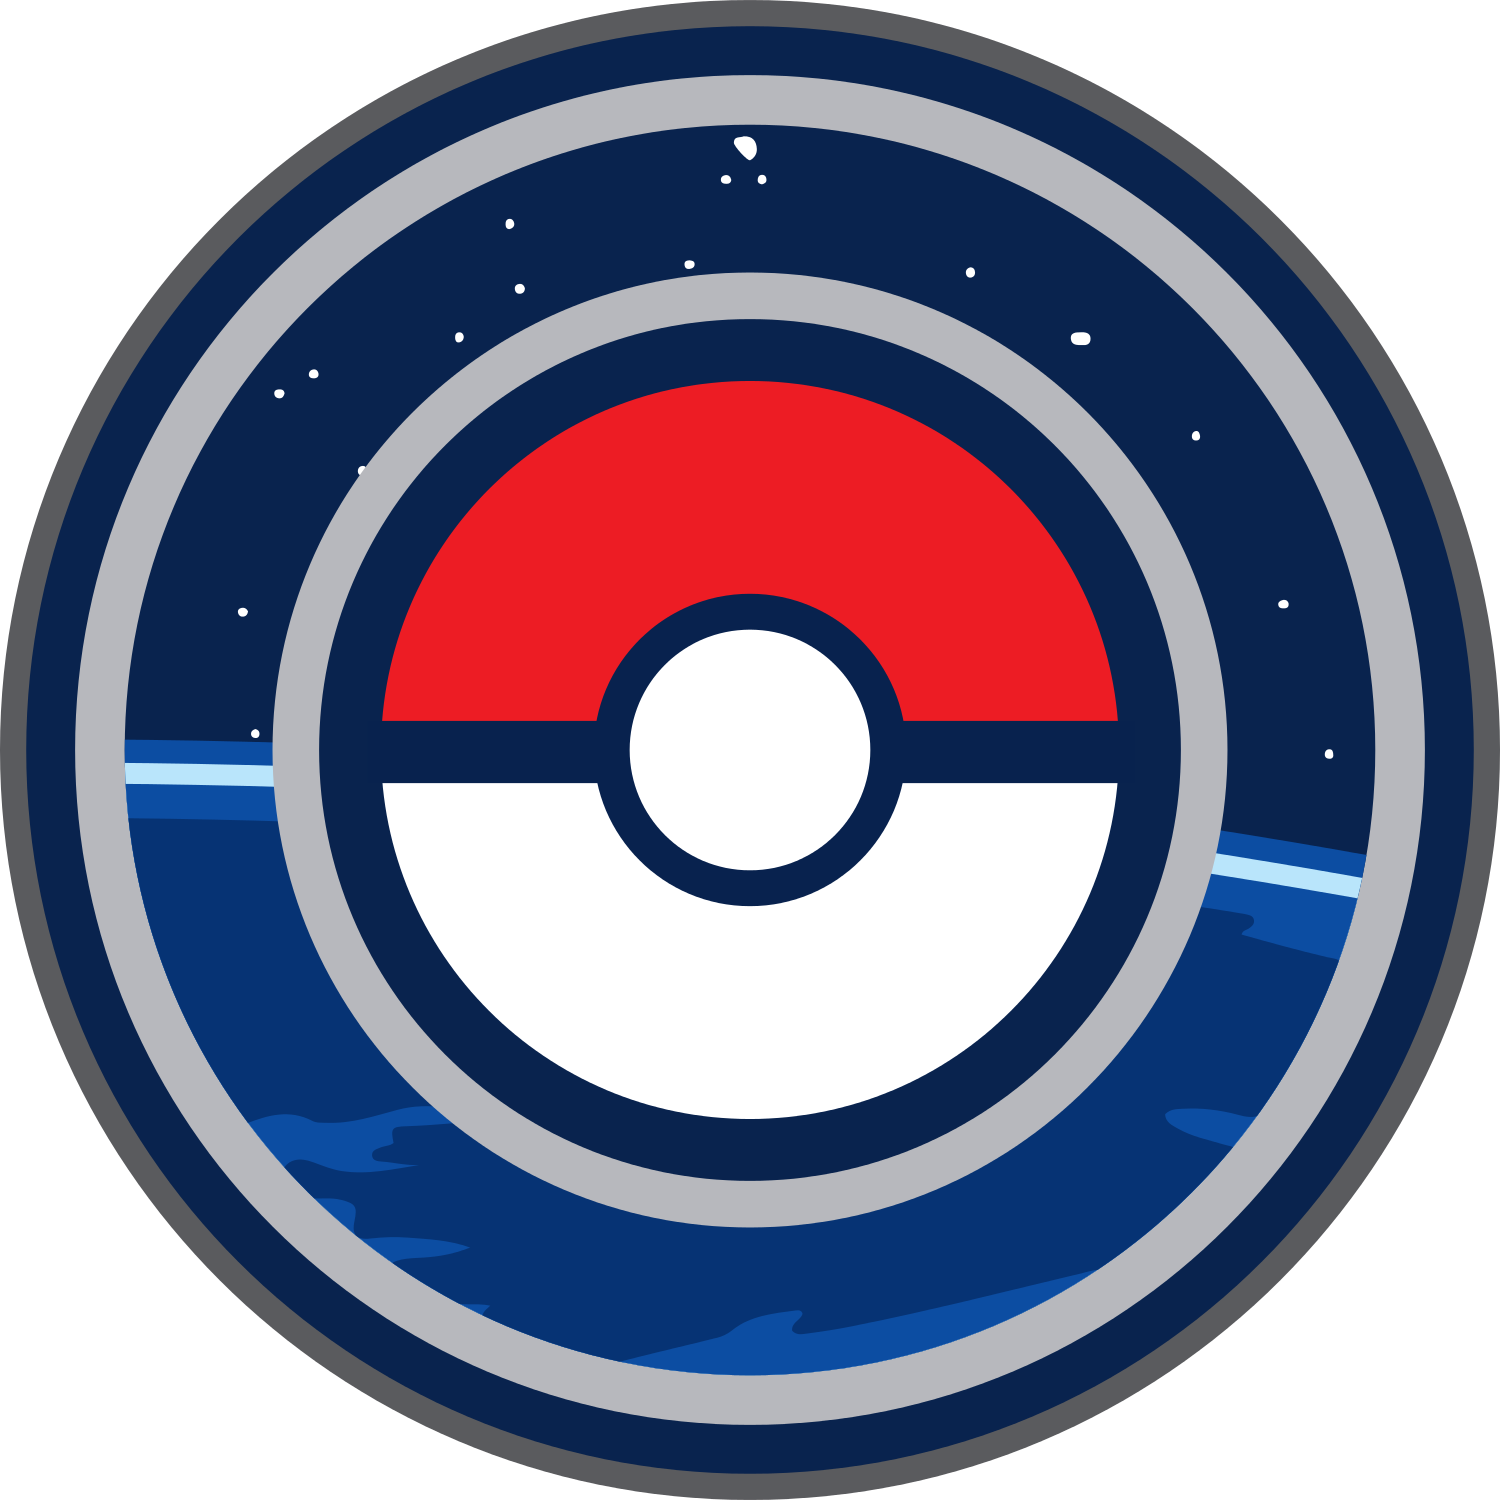 Pokémon GO icon logo